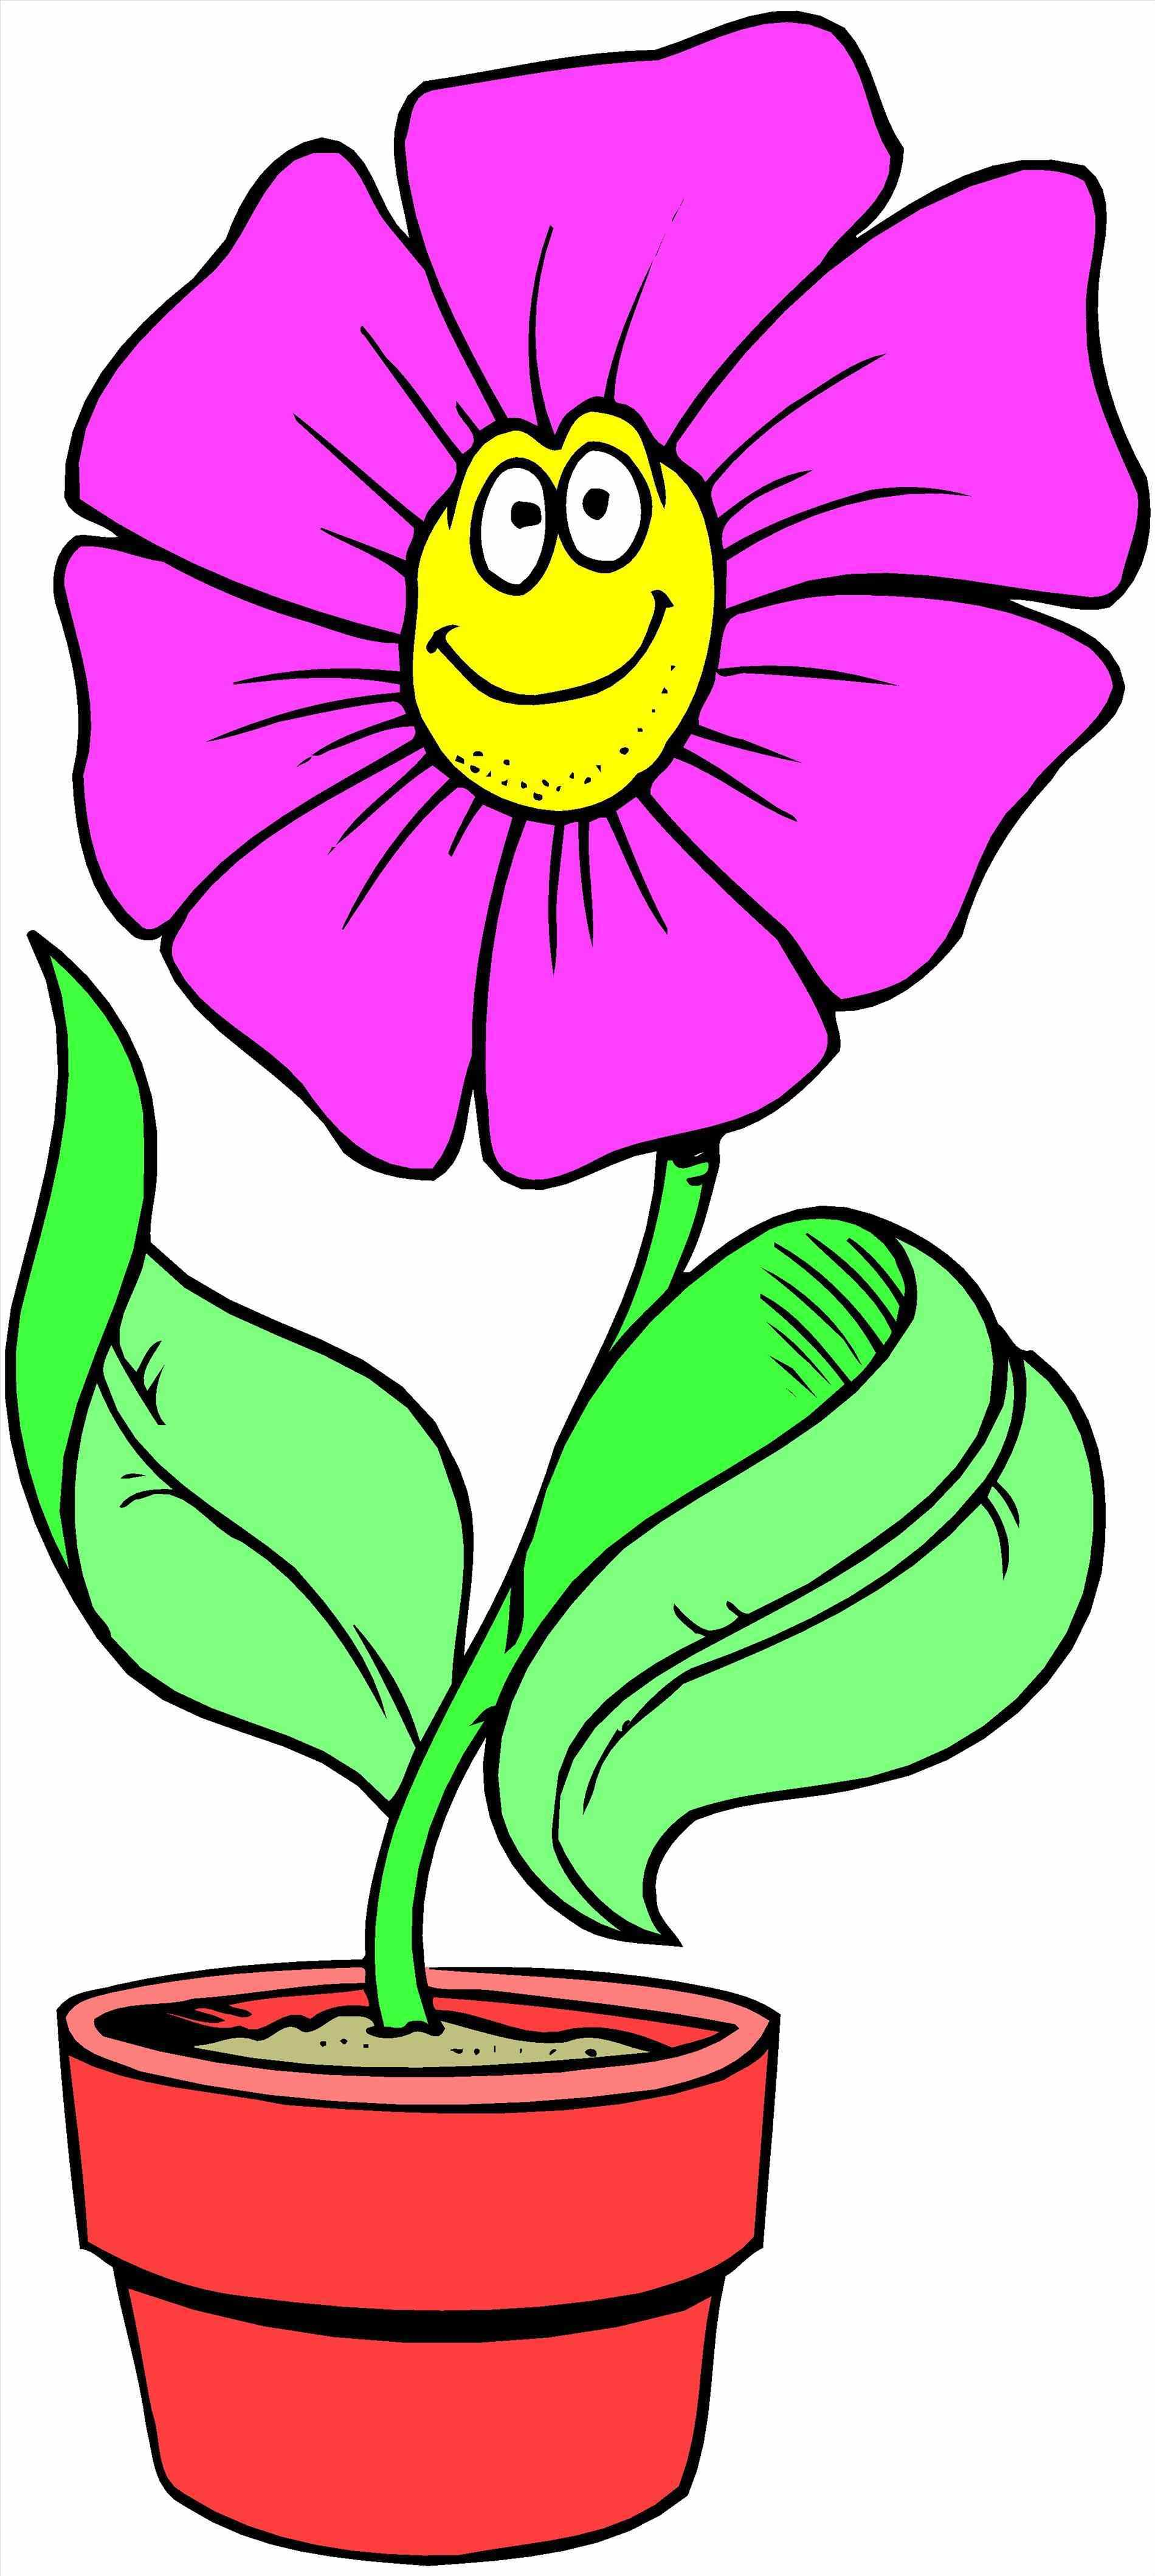 1900x4237 On Coon Coon Dead Flowers Clip Art Free Download On Day Sugar